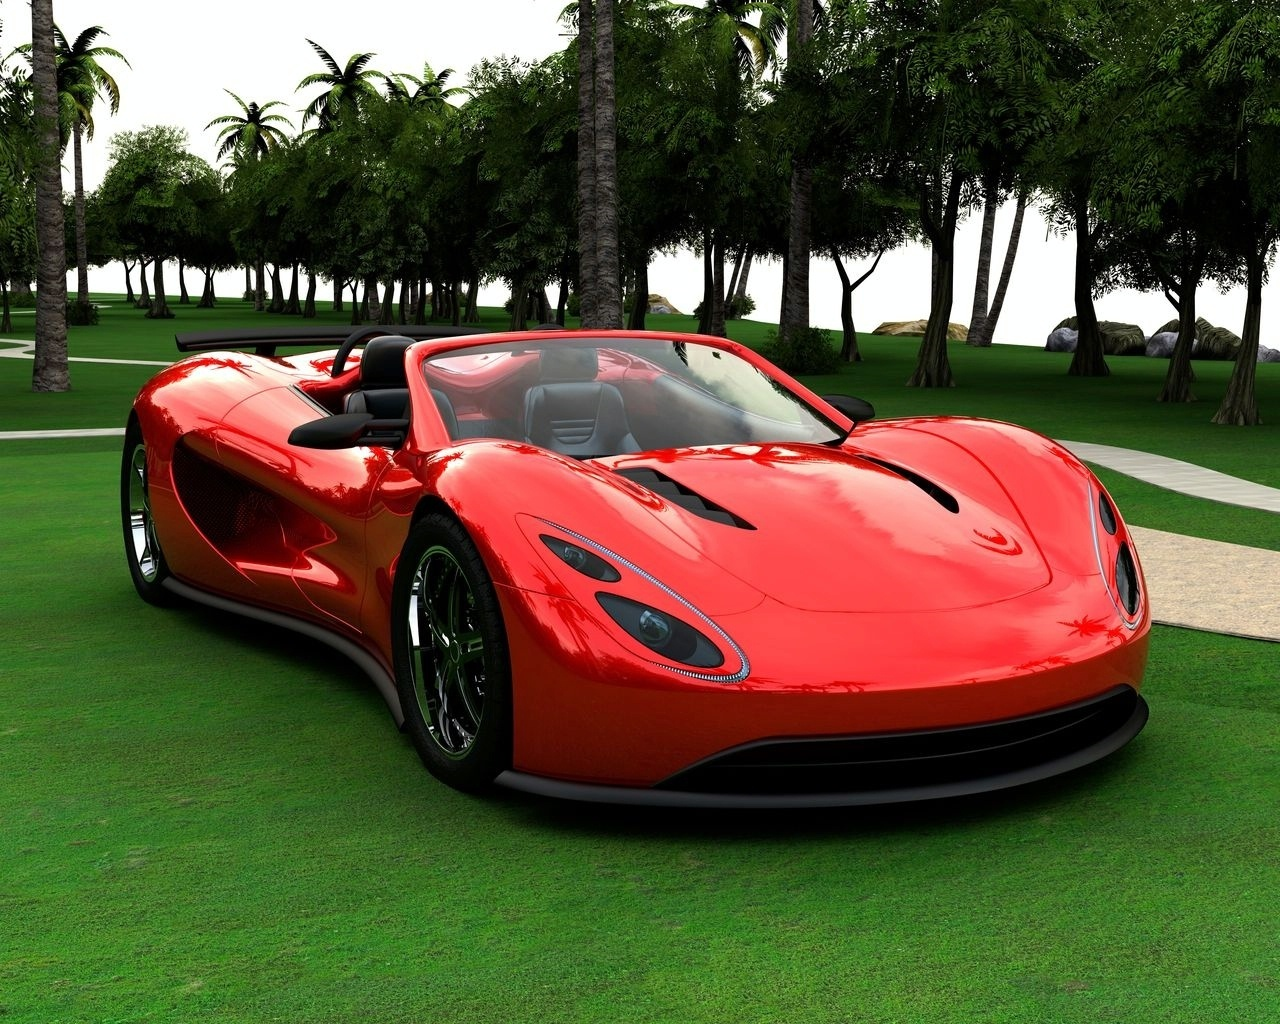 http://2.bp.blogspot.com/-Or5adHgp62Y/TjKtXX3snrI/AAAAAAAAEXs/g_KGfrsLZxA/s1600/Hot+Cars+Wallpapers+%252820%2529.jpg